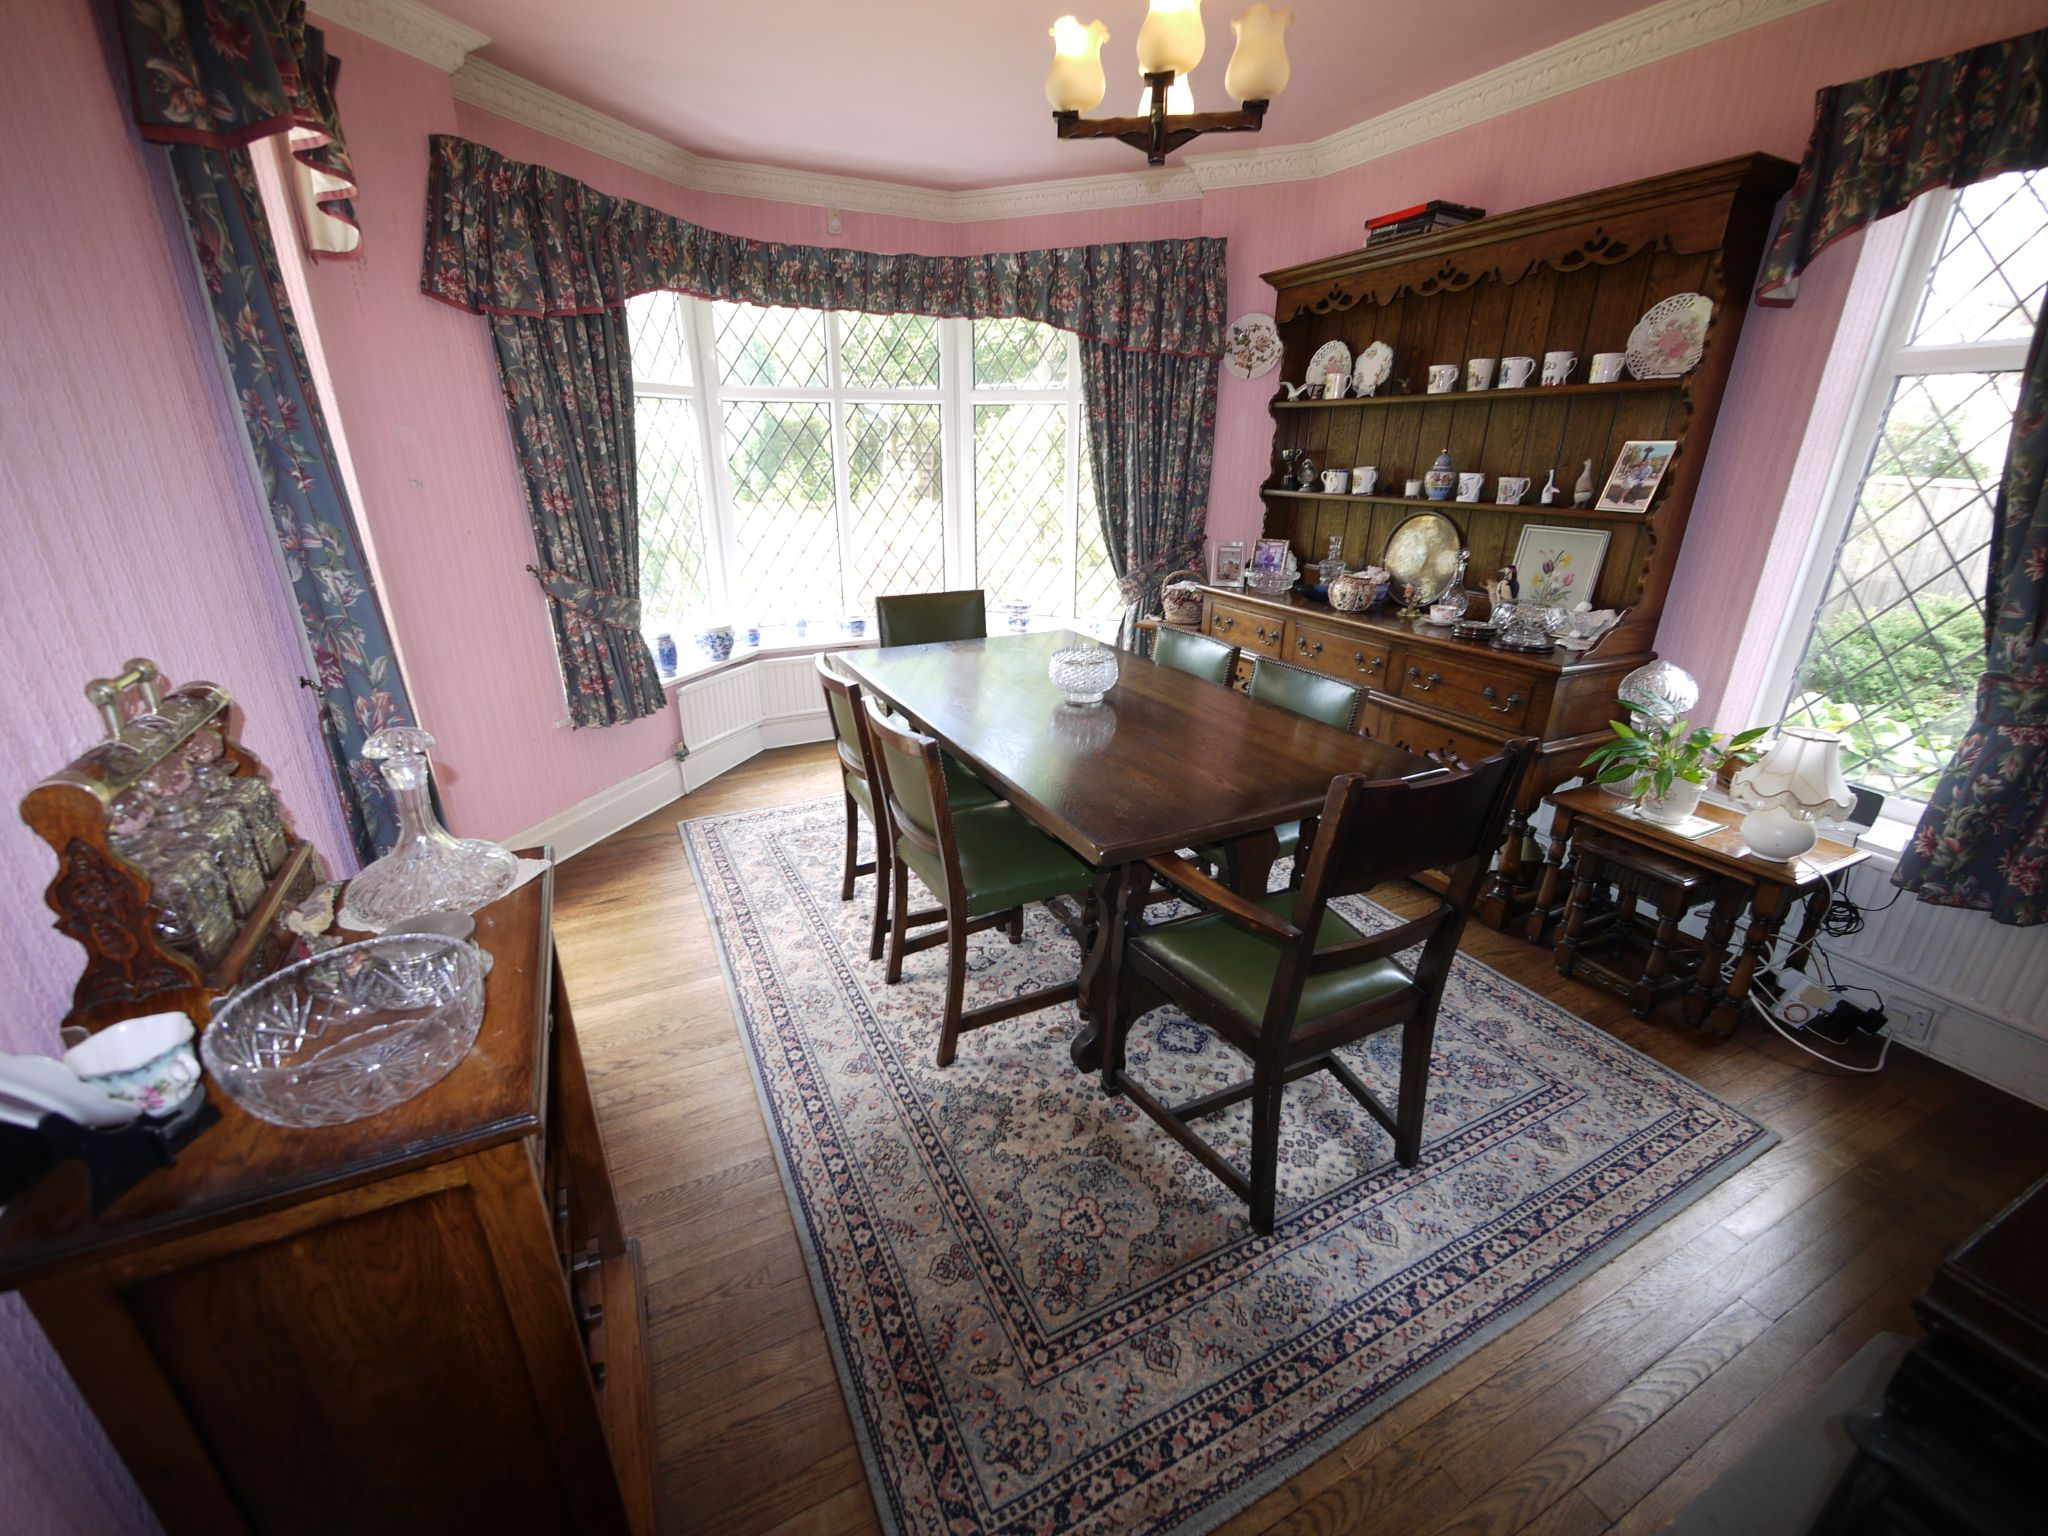 3 bedroom detached house SSTC in Brighouse - Dining Room.